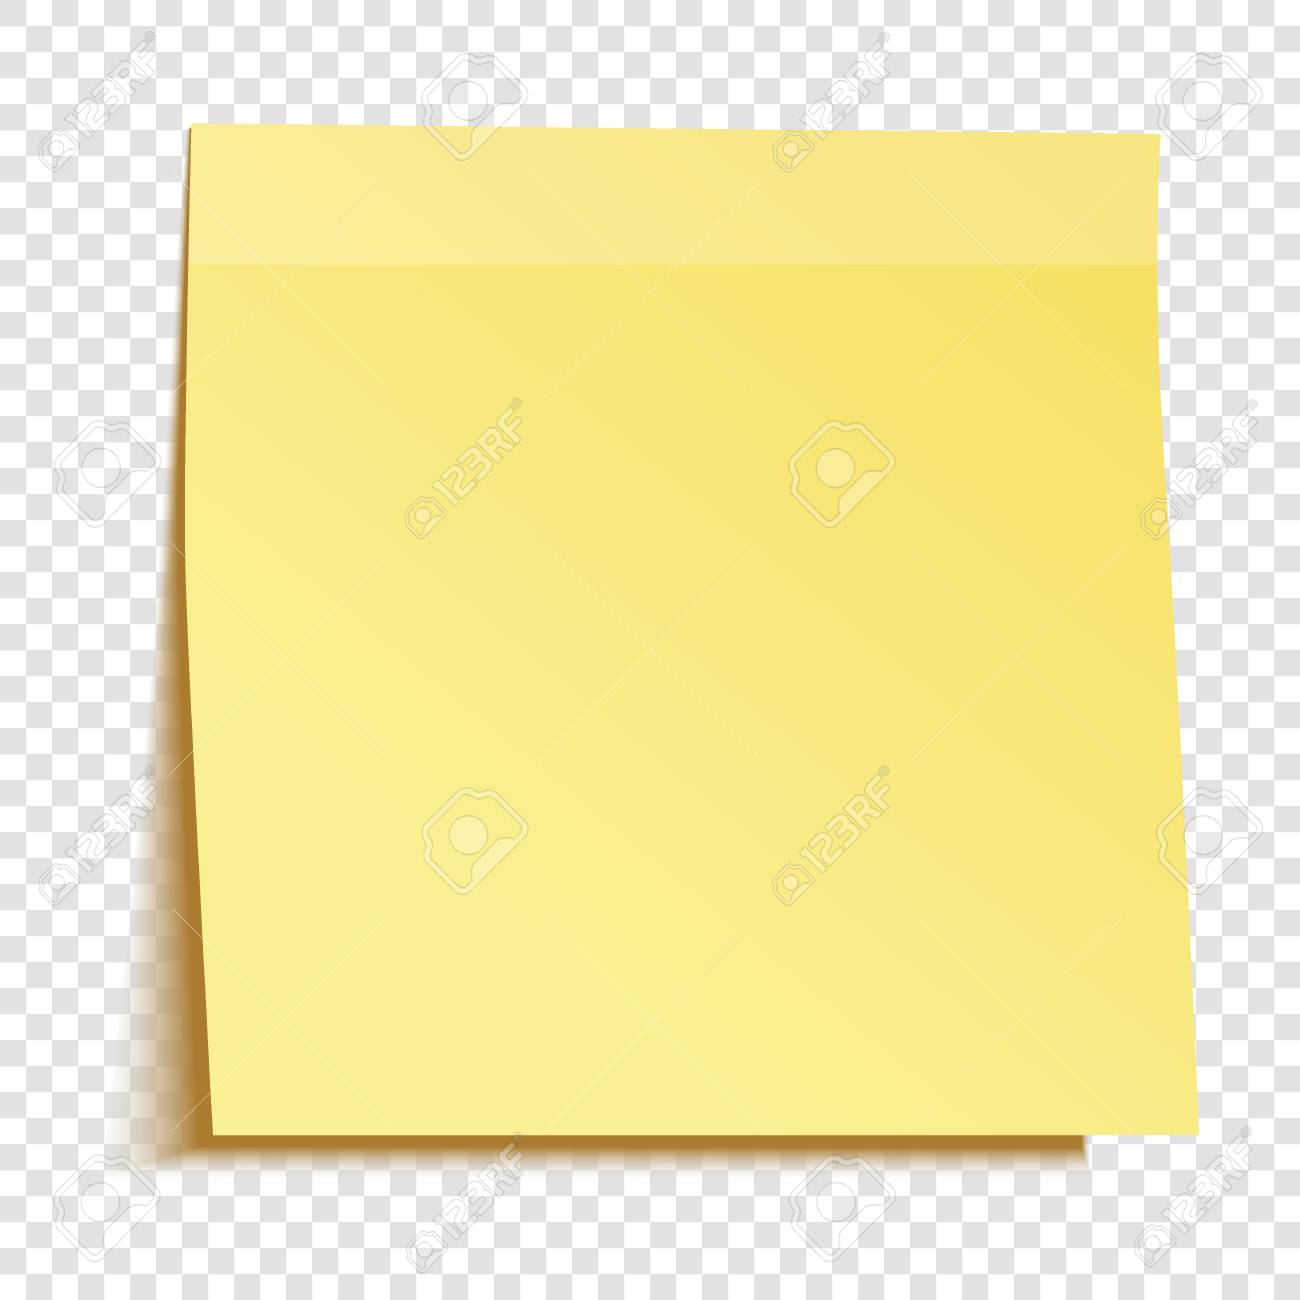 Sticky Note Transparent Background & Free Sticky Note.